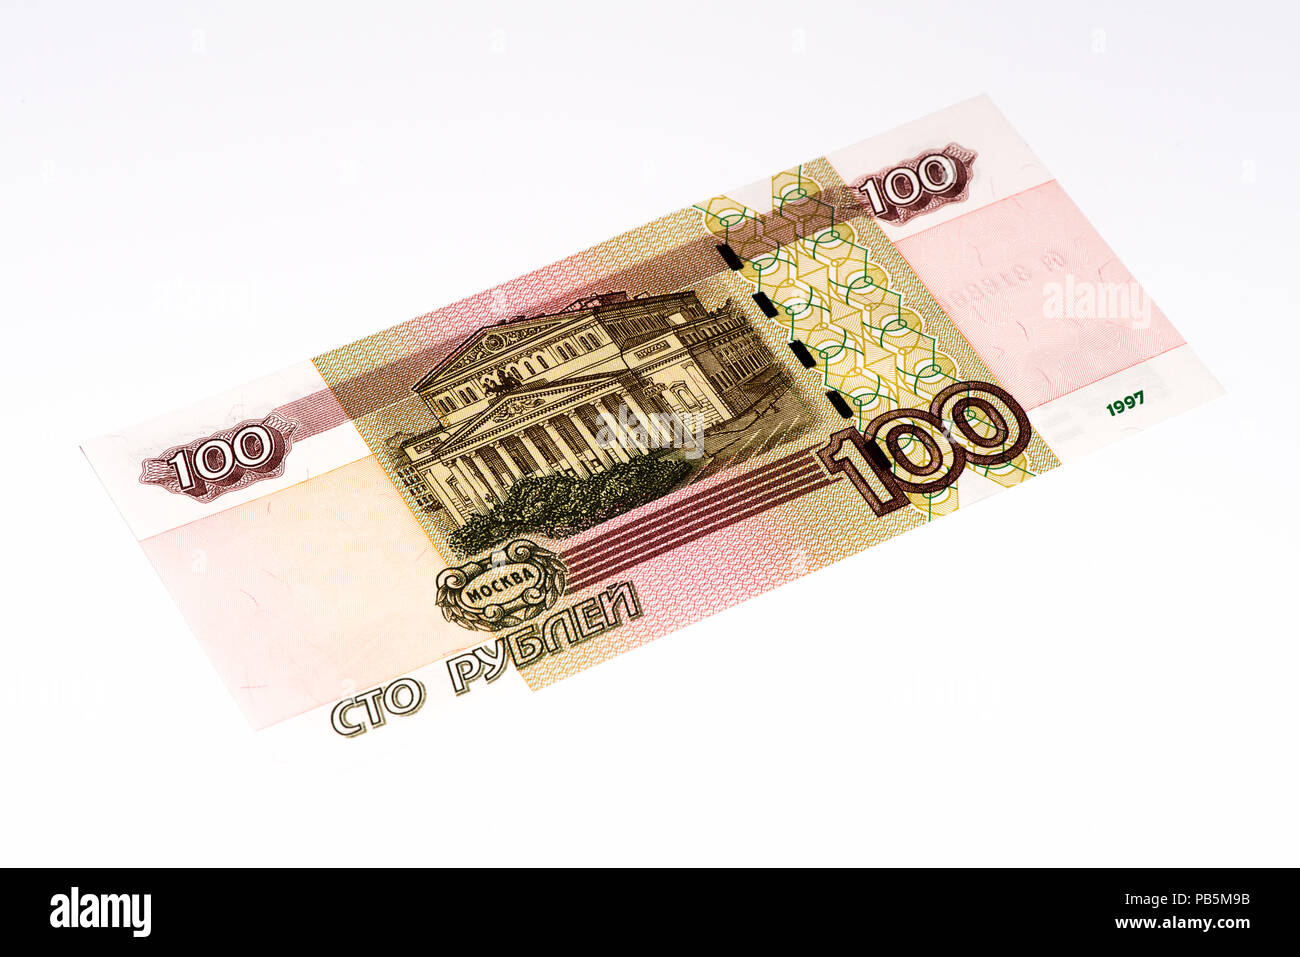 New 200 rubles in the Crimea sell for 500